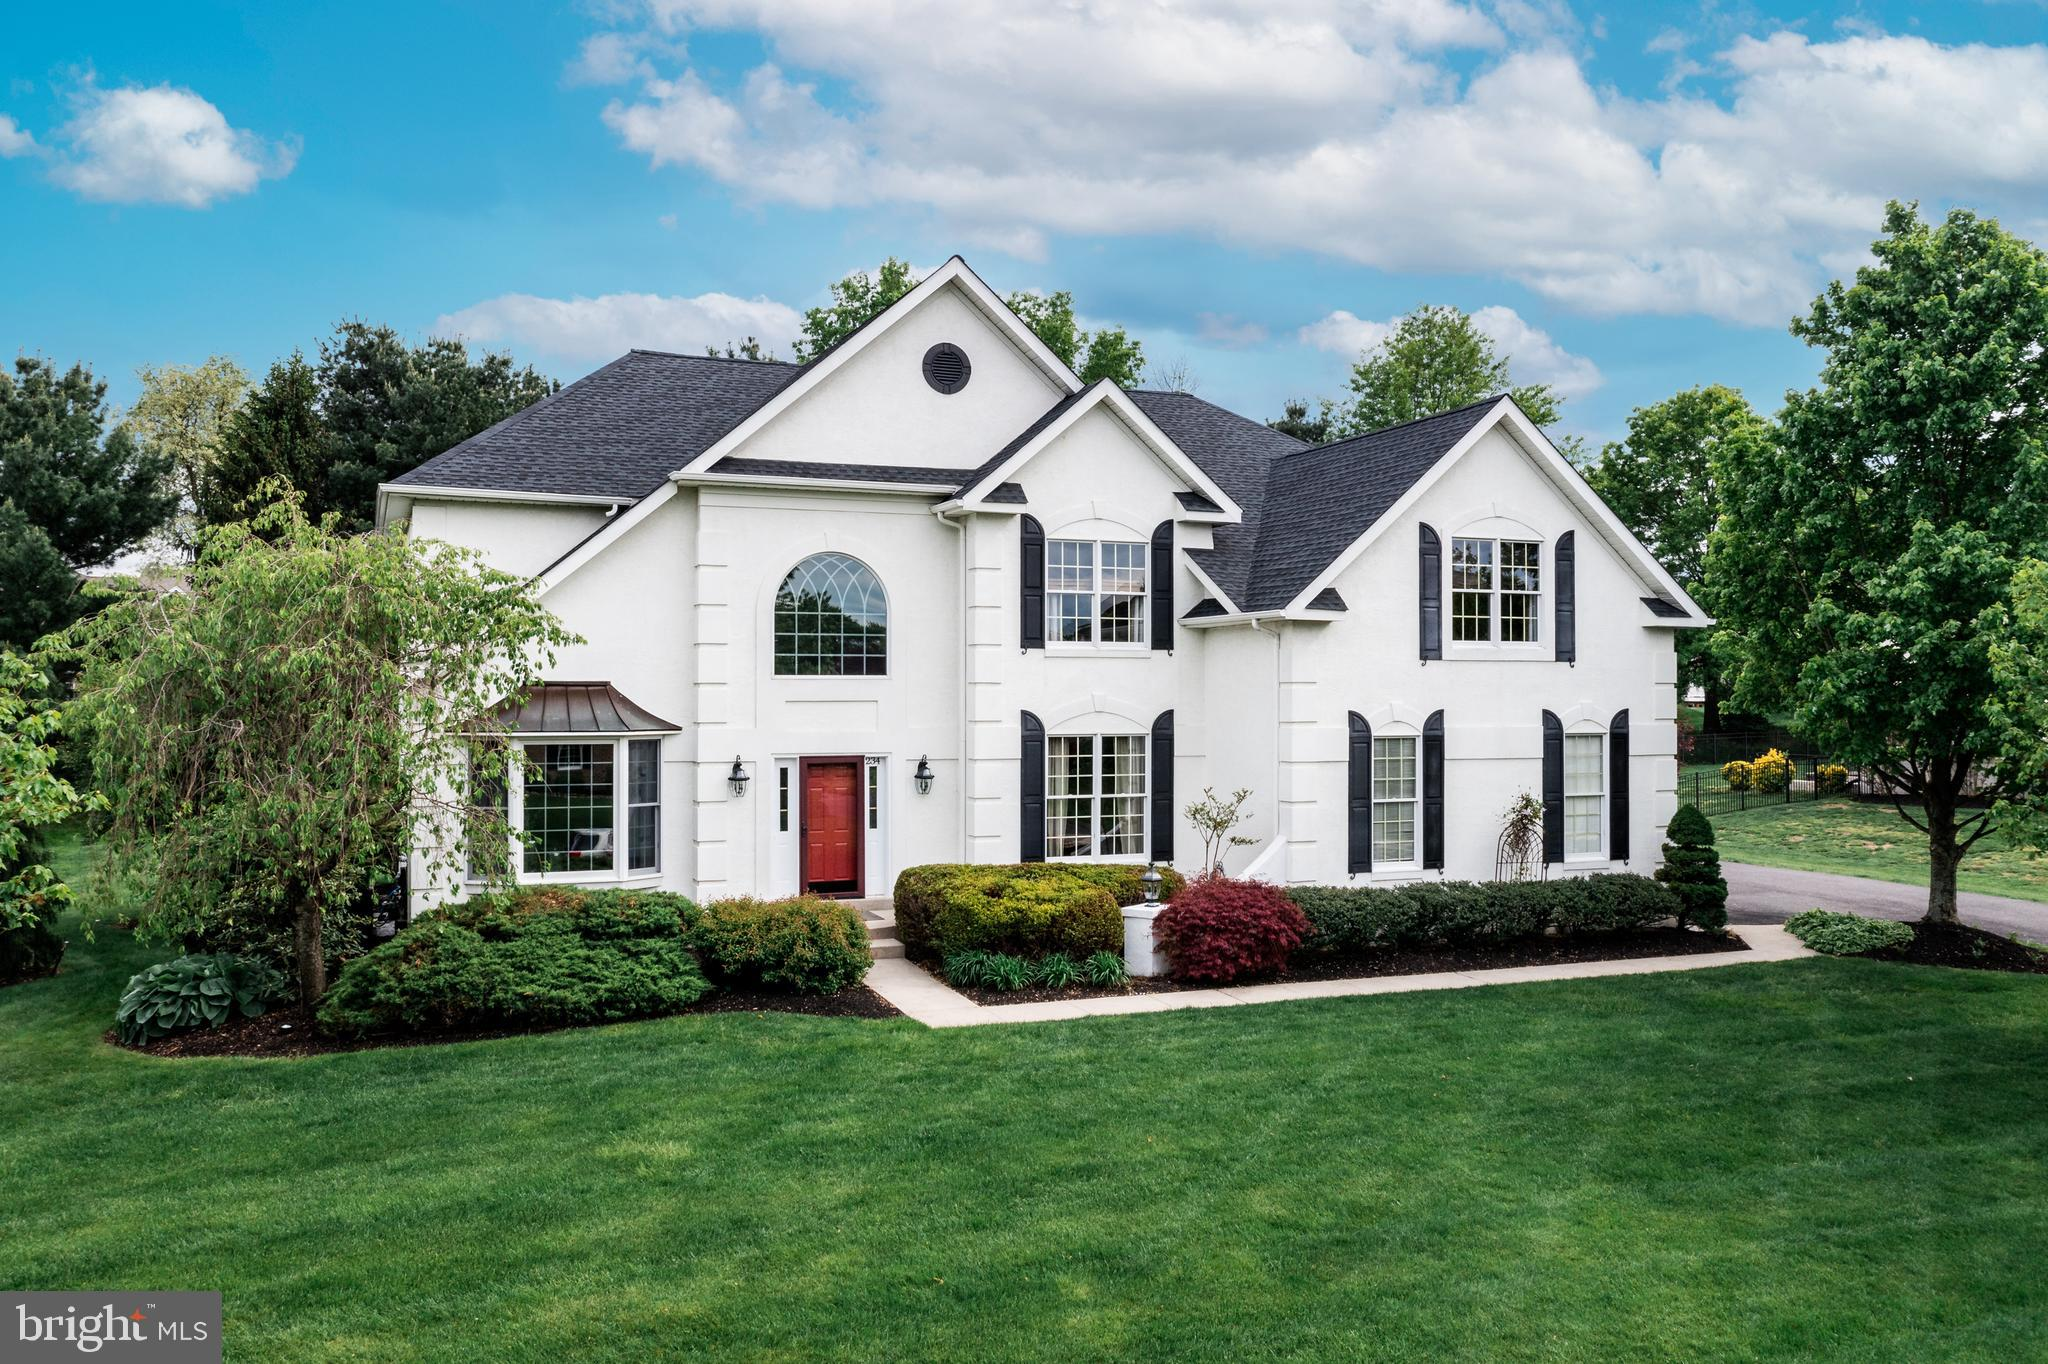 It's not that often you can find such a prestigious home in the much desired Laurel Creek neighborhood while still having absolute privacy too. Here is your chance to have the best of both worlds- country club life with a quiet lot tucked away to enjoy. Enter into this Harvard model to find a 2 story foyer with tons of natural light and hardwood flooring. The attention to detail can not be overlooked throughout this downstairs. With neutral decor and high end finishes, this home is truly move-in condition. Crown molding, shadow boxing, professional paint and more are just a few of the highlights of the first floor. Enjoy an open floor plan with a large sunken family room complete with custom stone mantel, a wood burning fireplace, and textured carpet. The exterior wall is two stories of floor to ceiling windows, and is absolutely breathtaking. The kitchen is equipped with a full stainless steel appliance package, 42 inch white cabinets, large pantry, island, and granite countertops. To complete the first floor you will find a powder room, tinted windows, and a spacious home office with built-in shelving and windowed doors to give you privacy for working without feeling like you are locked away in an office all day. Head upstairs to find dual staircases that are tastefully decorated with a wood and wrought iron banister, professional stairway runner, and high end neutral carpet. There you will find a master with the primary bath that has recently been updated with all the modern conveniences. The bedroom is spacious with plenty of storage, recess lighting and tray ceilings. There are 5 total bedrooms and 3 full bathrooms, including the primary bath. All the bathrooms are fresh and updated. But that is not all! Head down to the basement for additional living space. Here you find a full finished walkout basement with brand new plank floors and powder room. The options are endless with this space! And here is the best part! If you are passionate about improving your swi